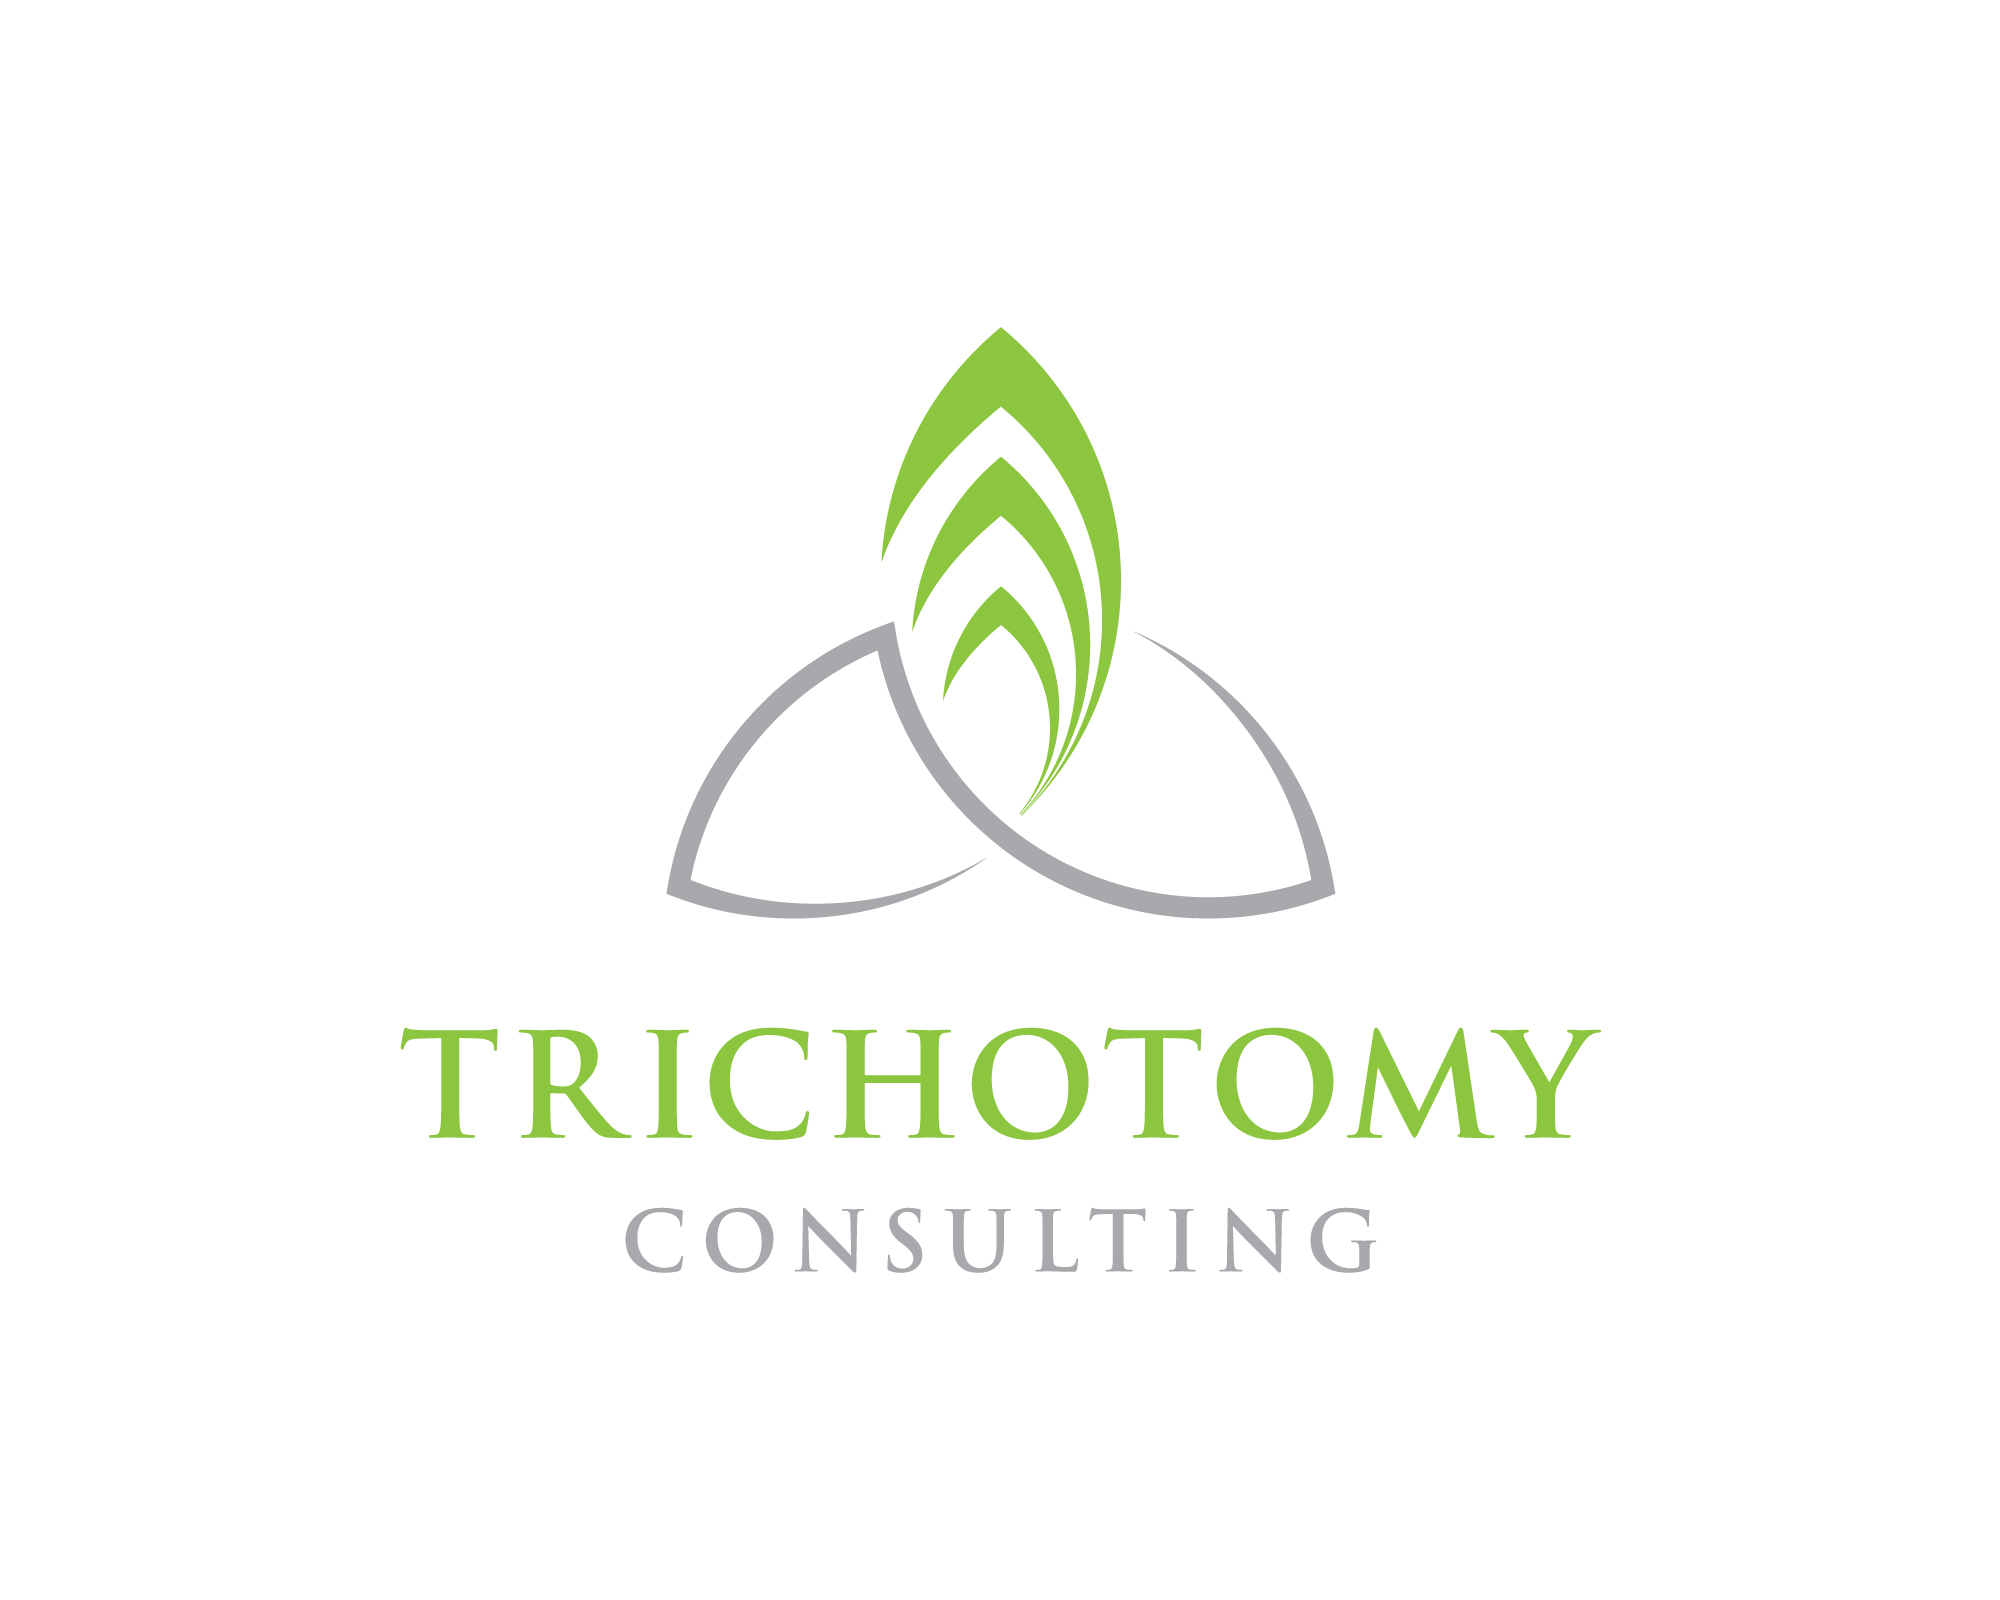 Trichotomy Consulting